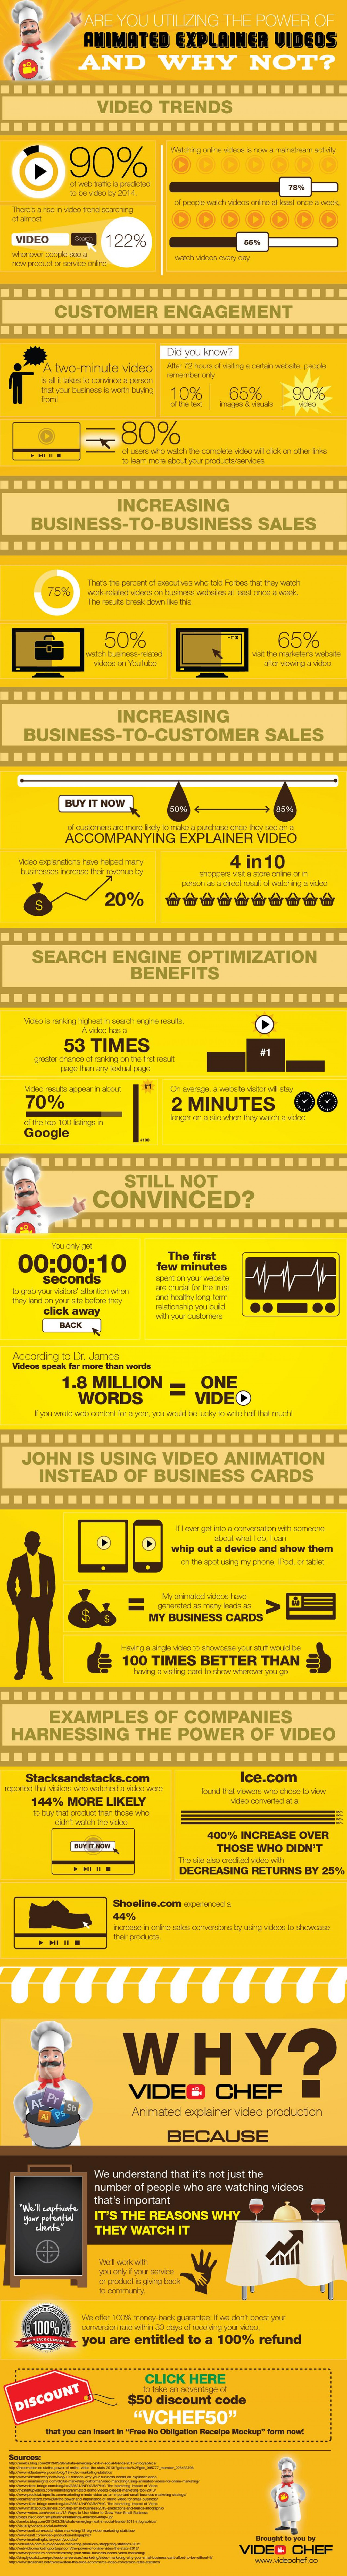 Are you utilizing the power of animated explainer videos and why not? Infographic